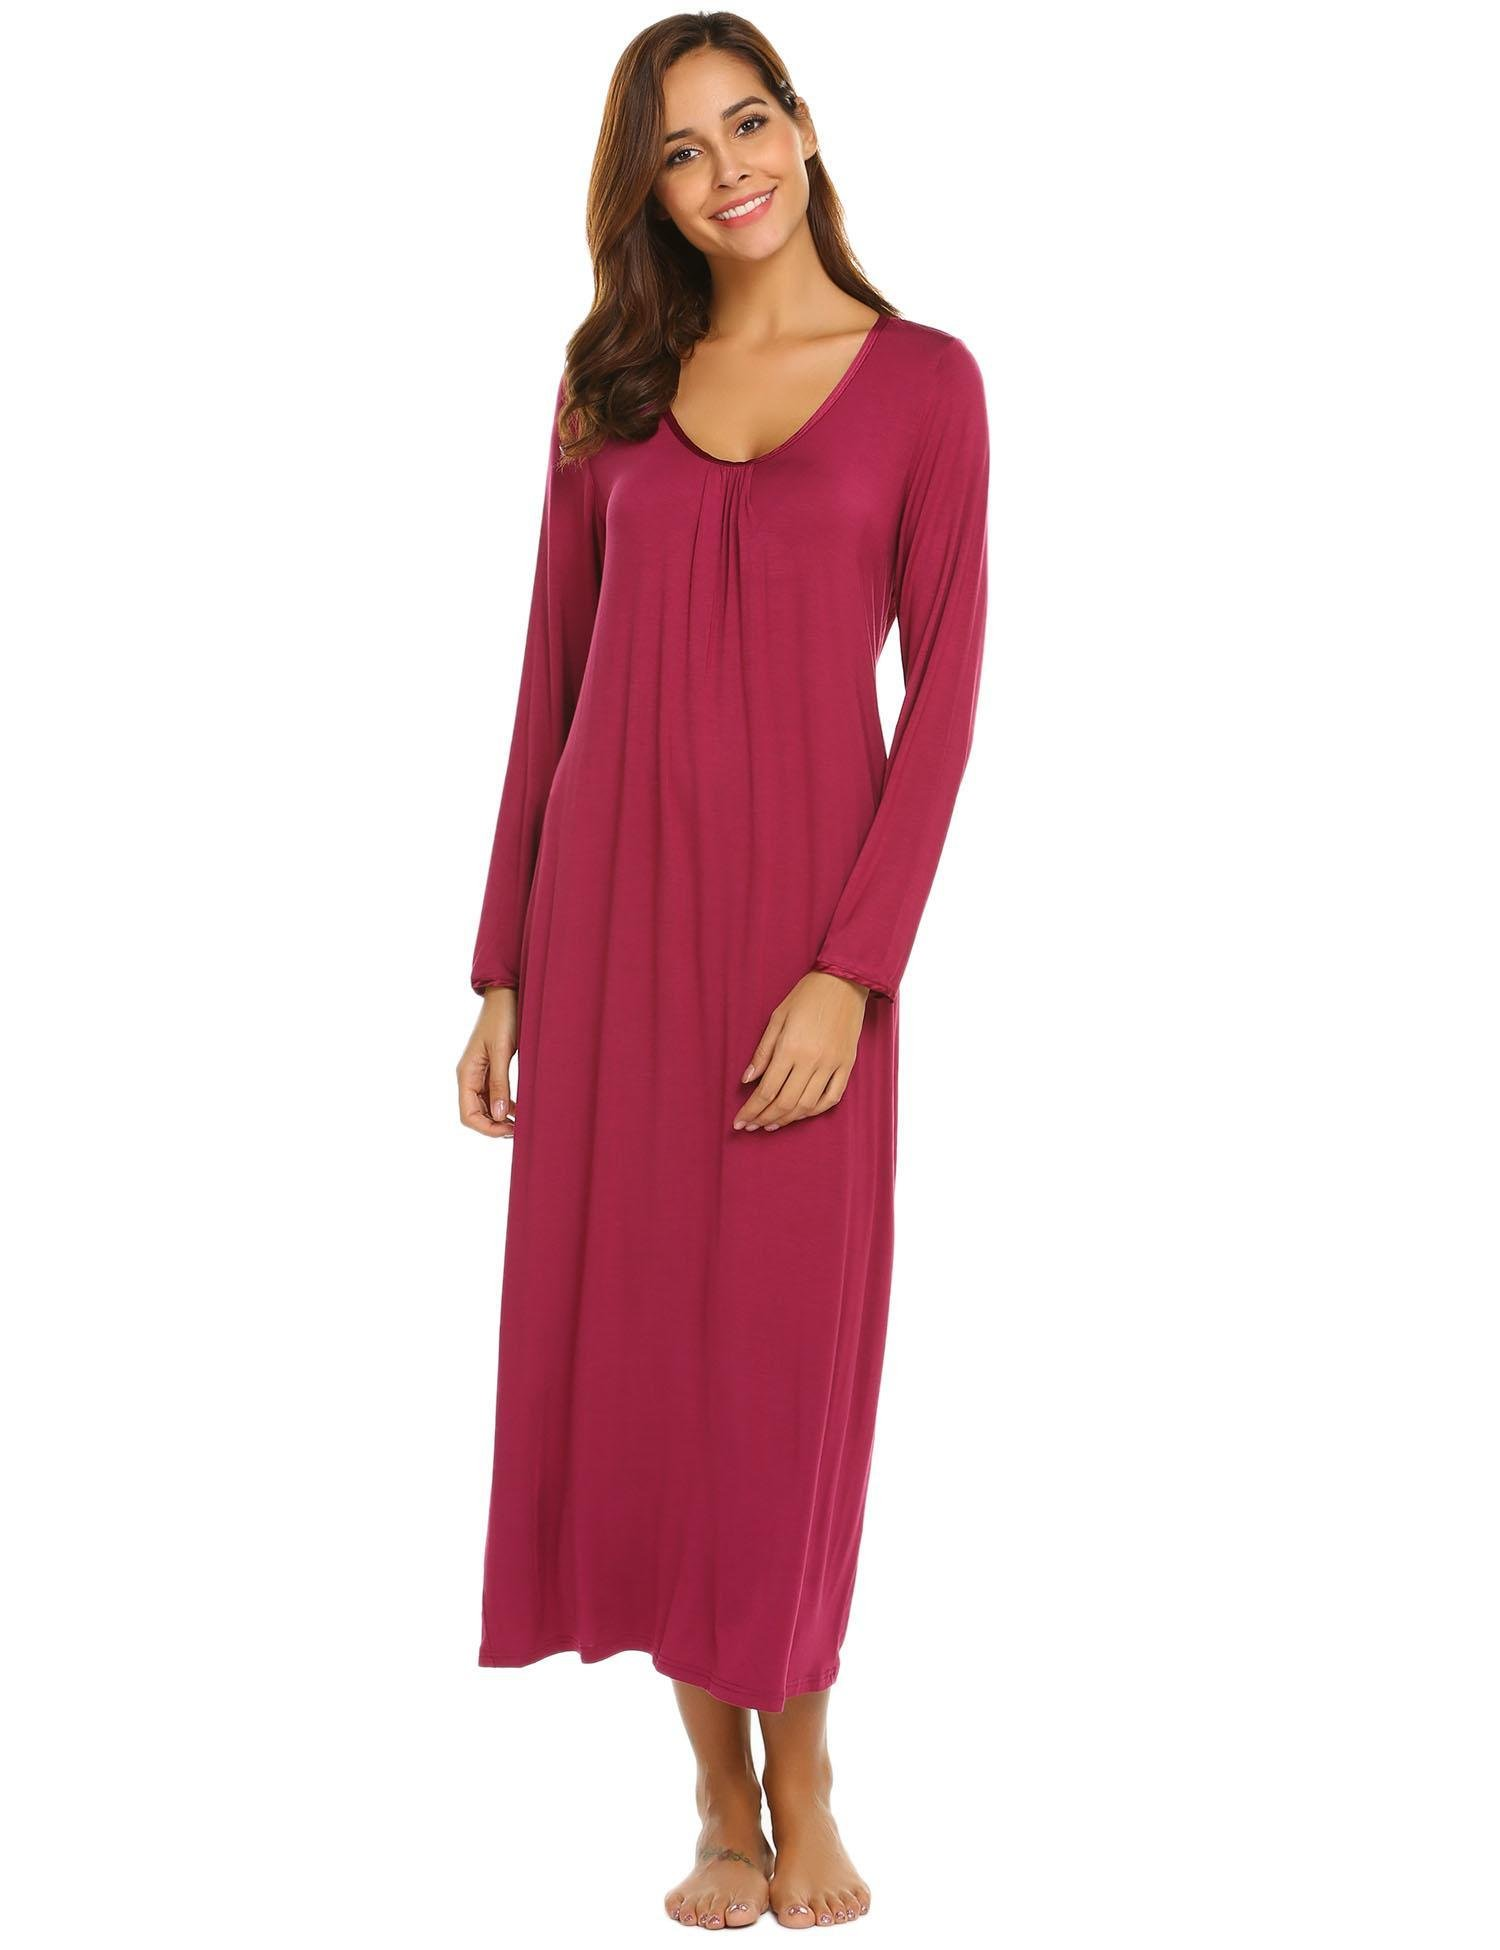 Yealsha Womens Long Sleeve Sleep Dress Oversized Loose Fit Sleep Gown Nightshirts Cherry Red L